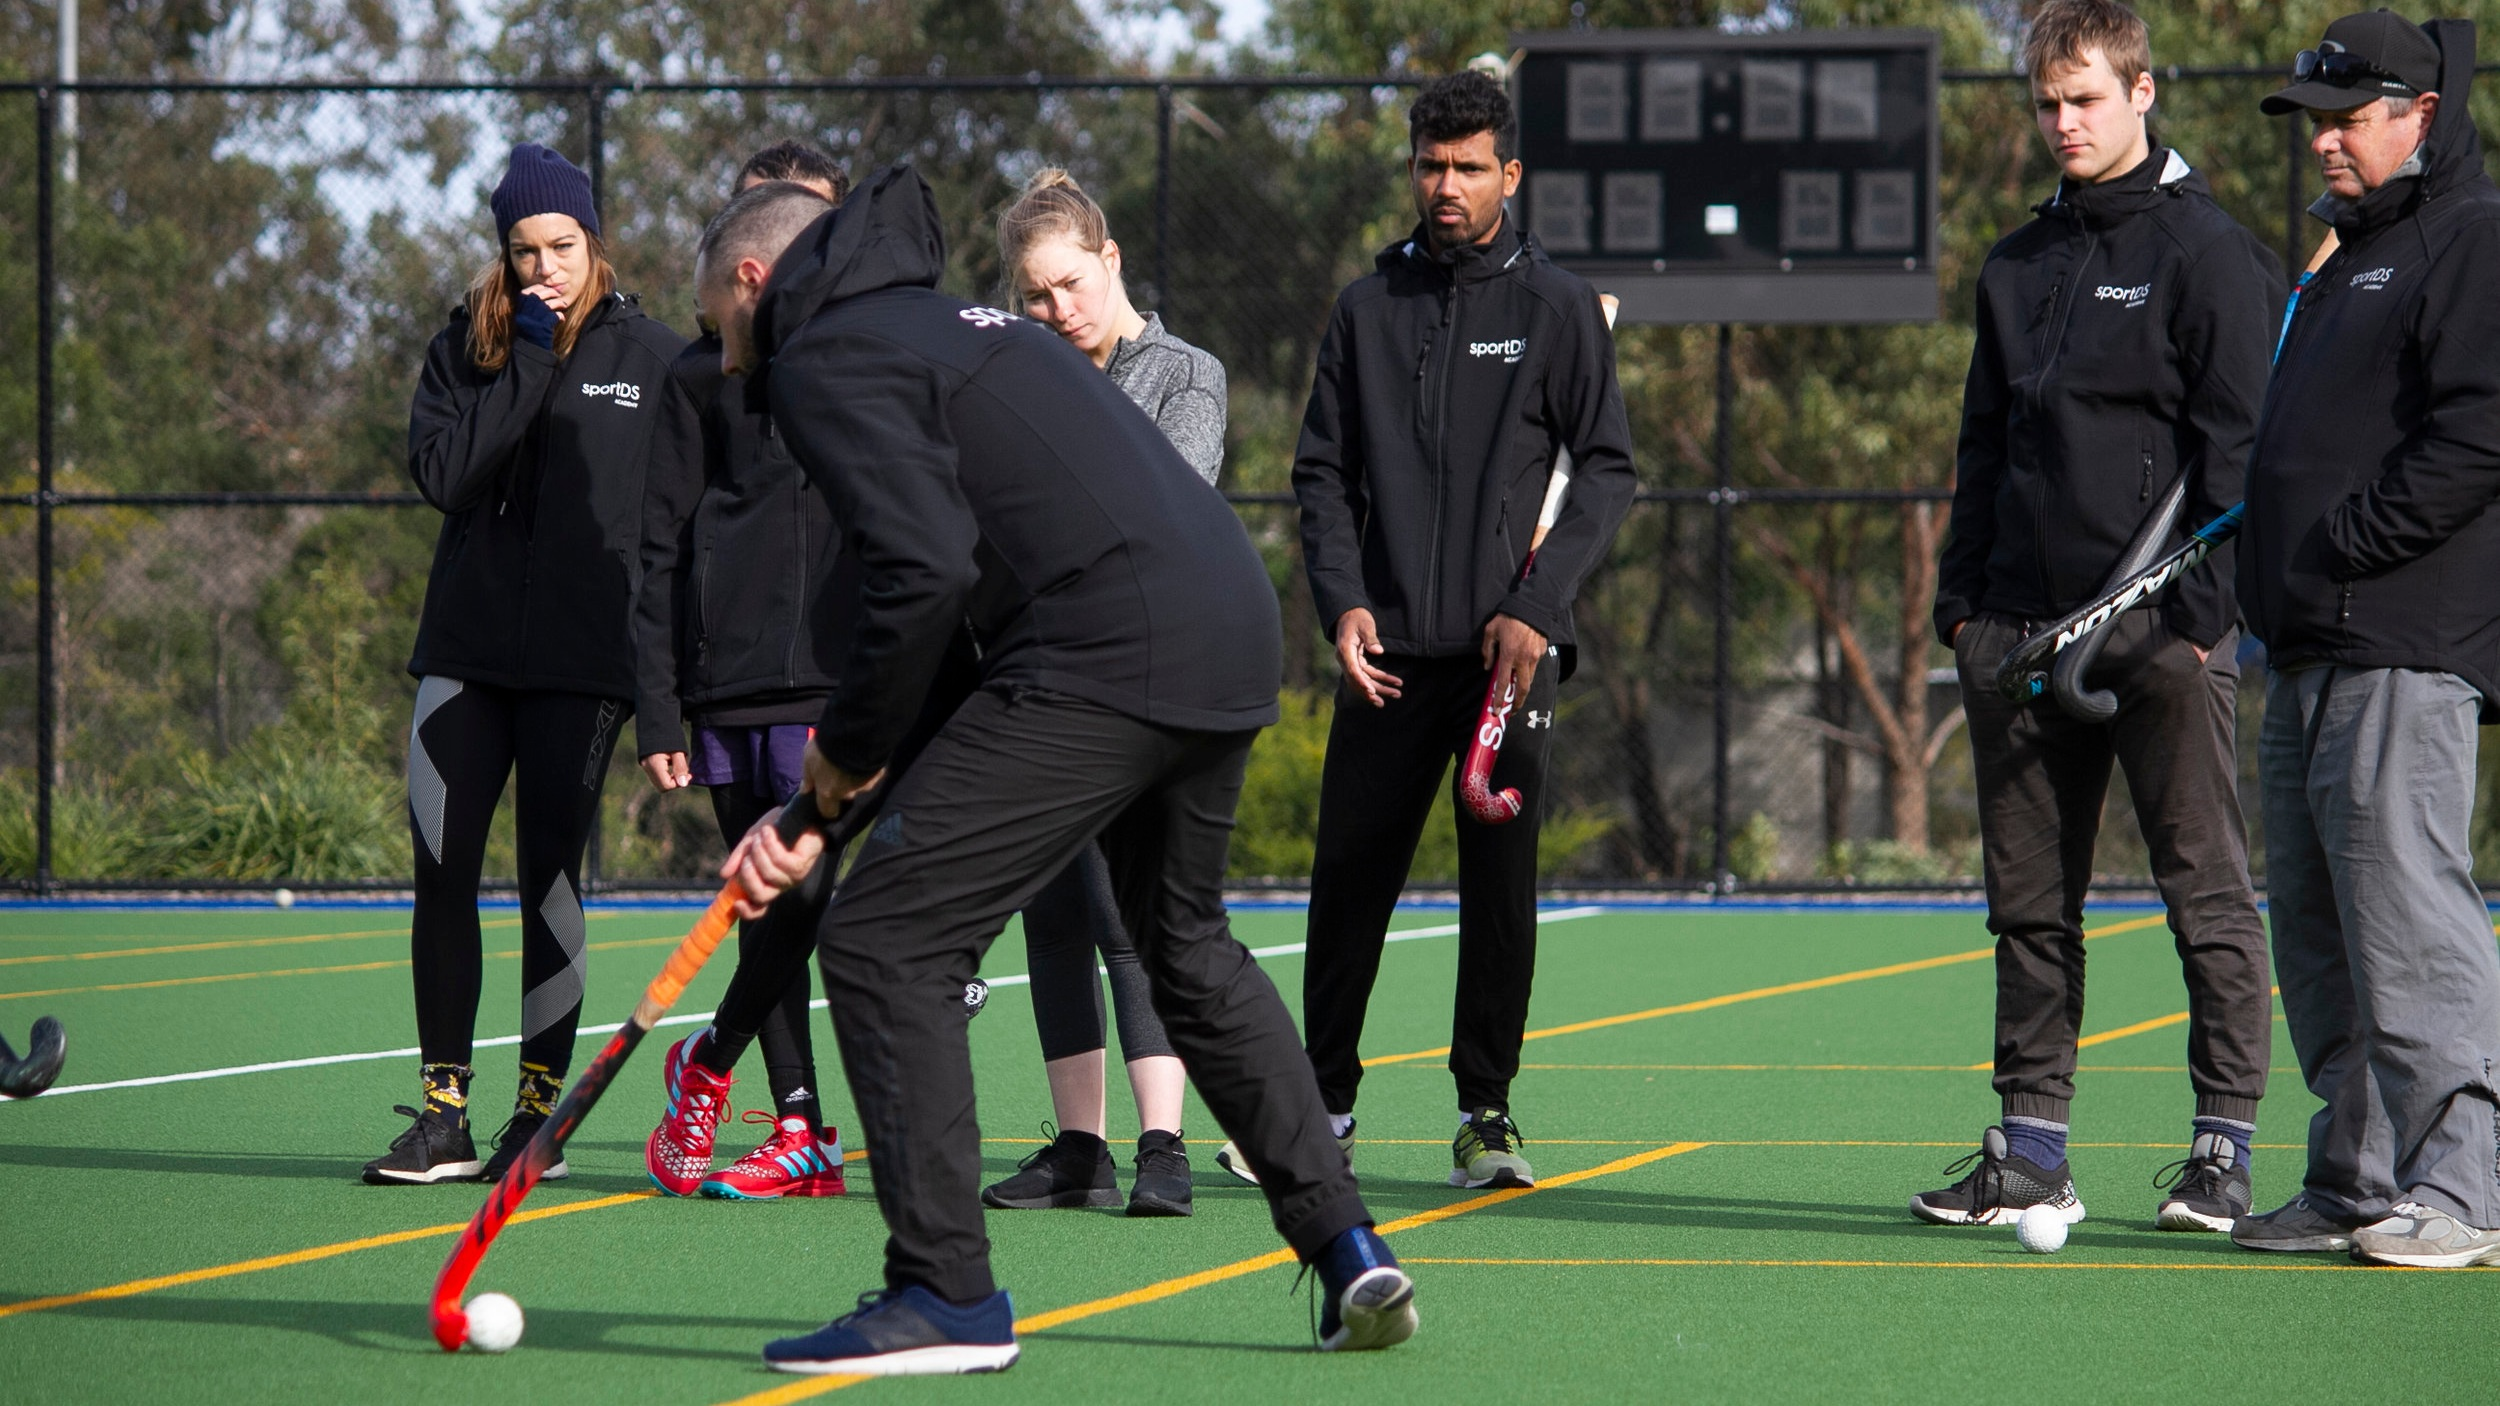 Elite Coaching - Receive training from Melbourne's top coaches in the position you play!